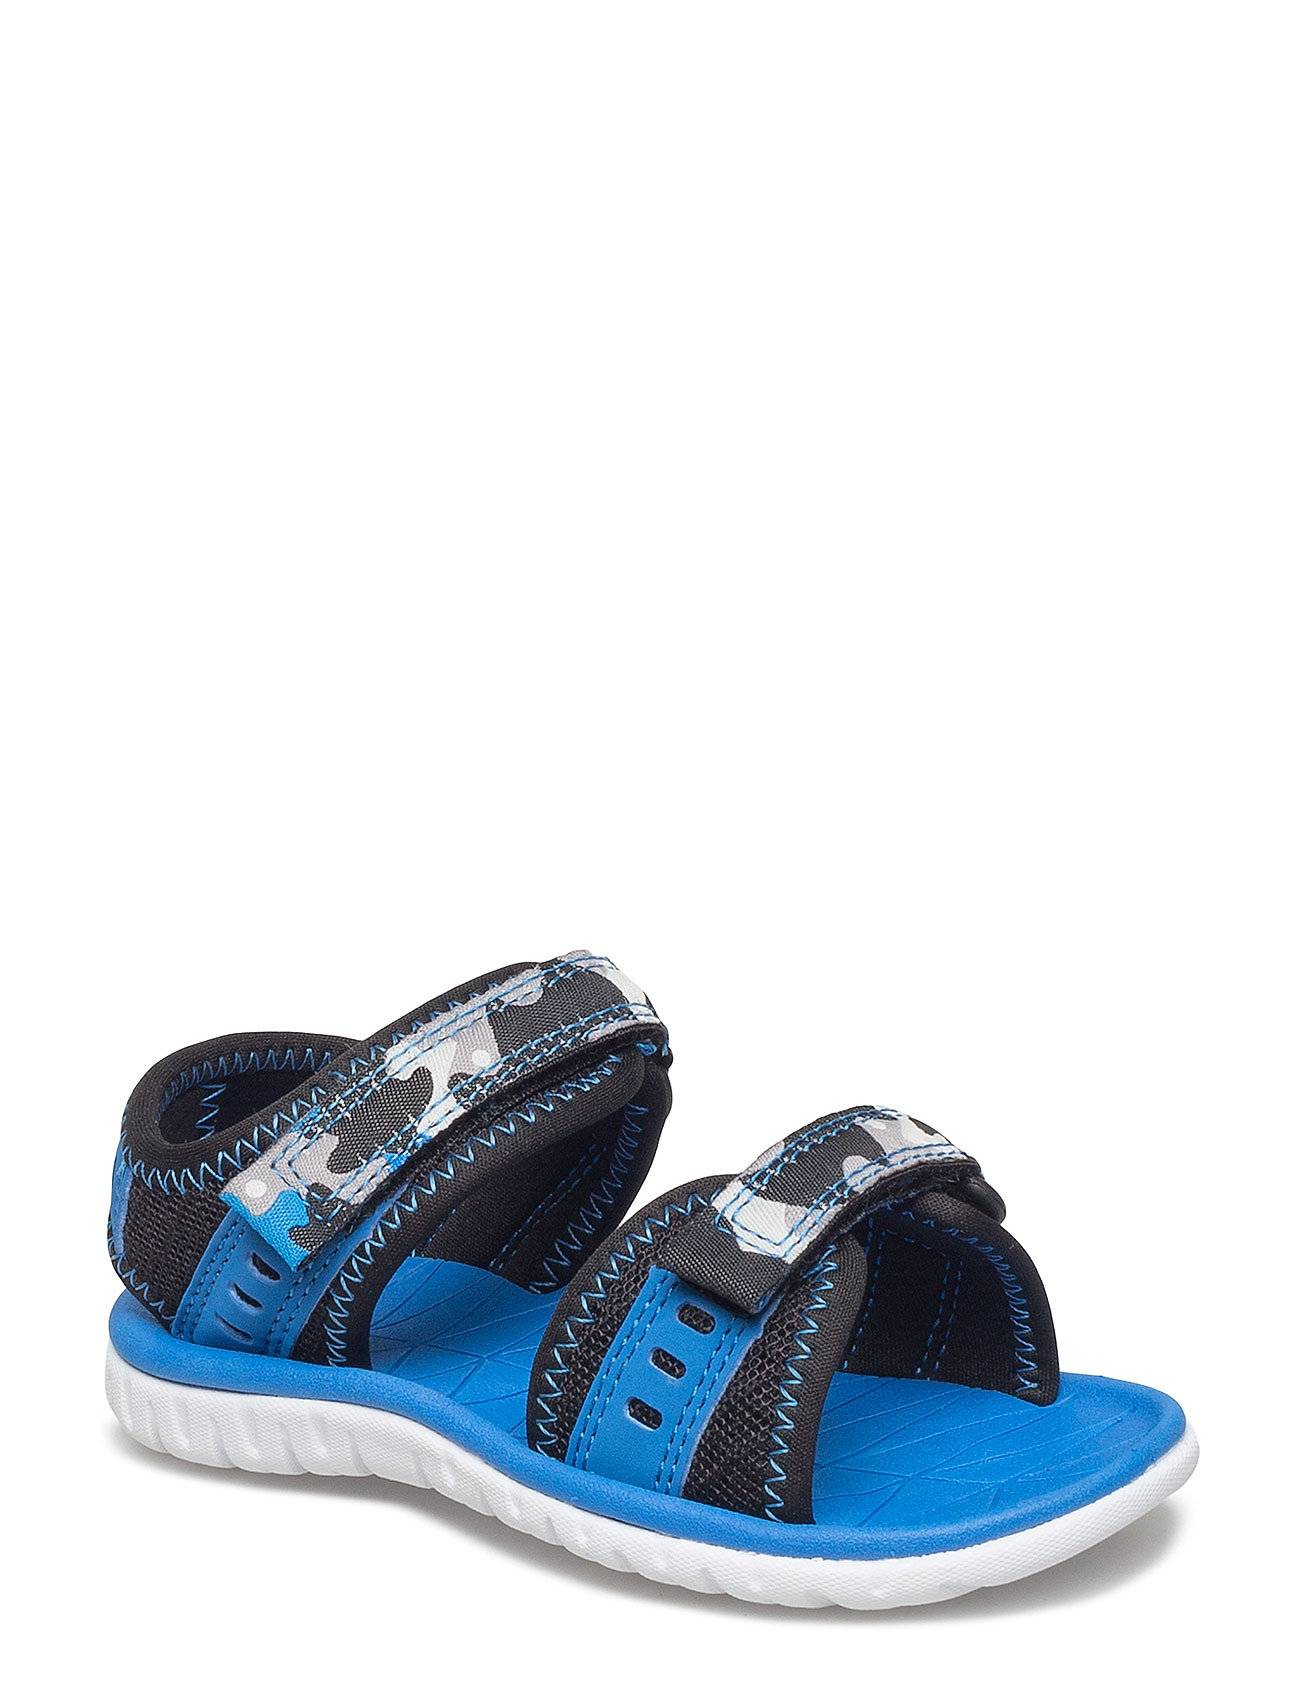 Clarks Surfing Wave